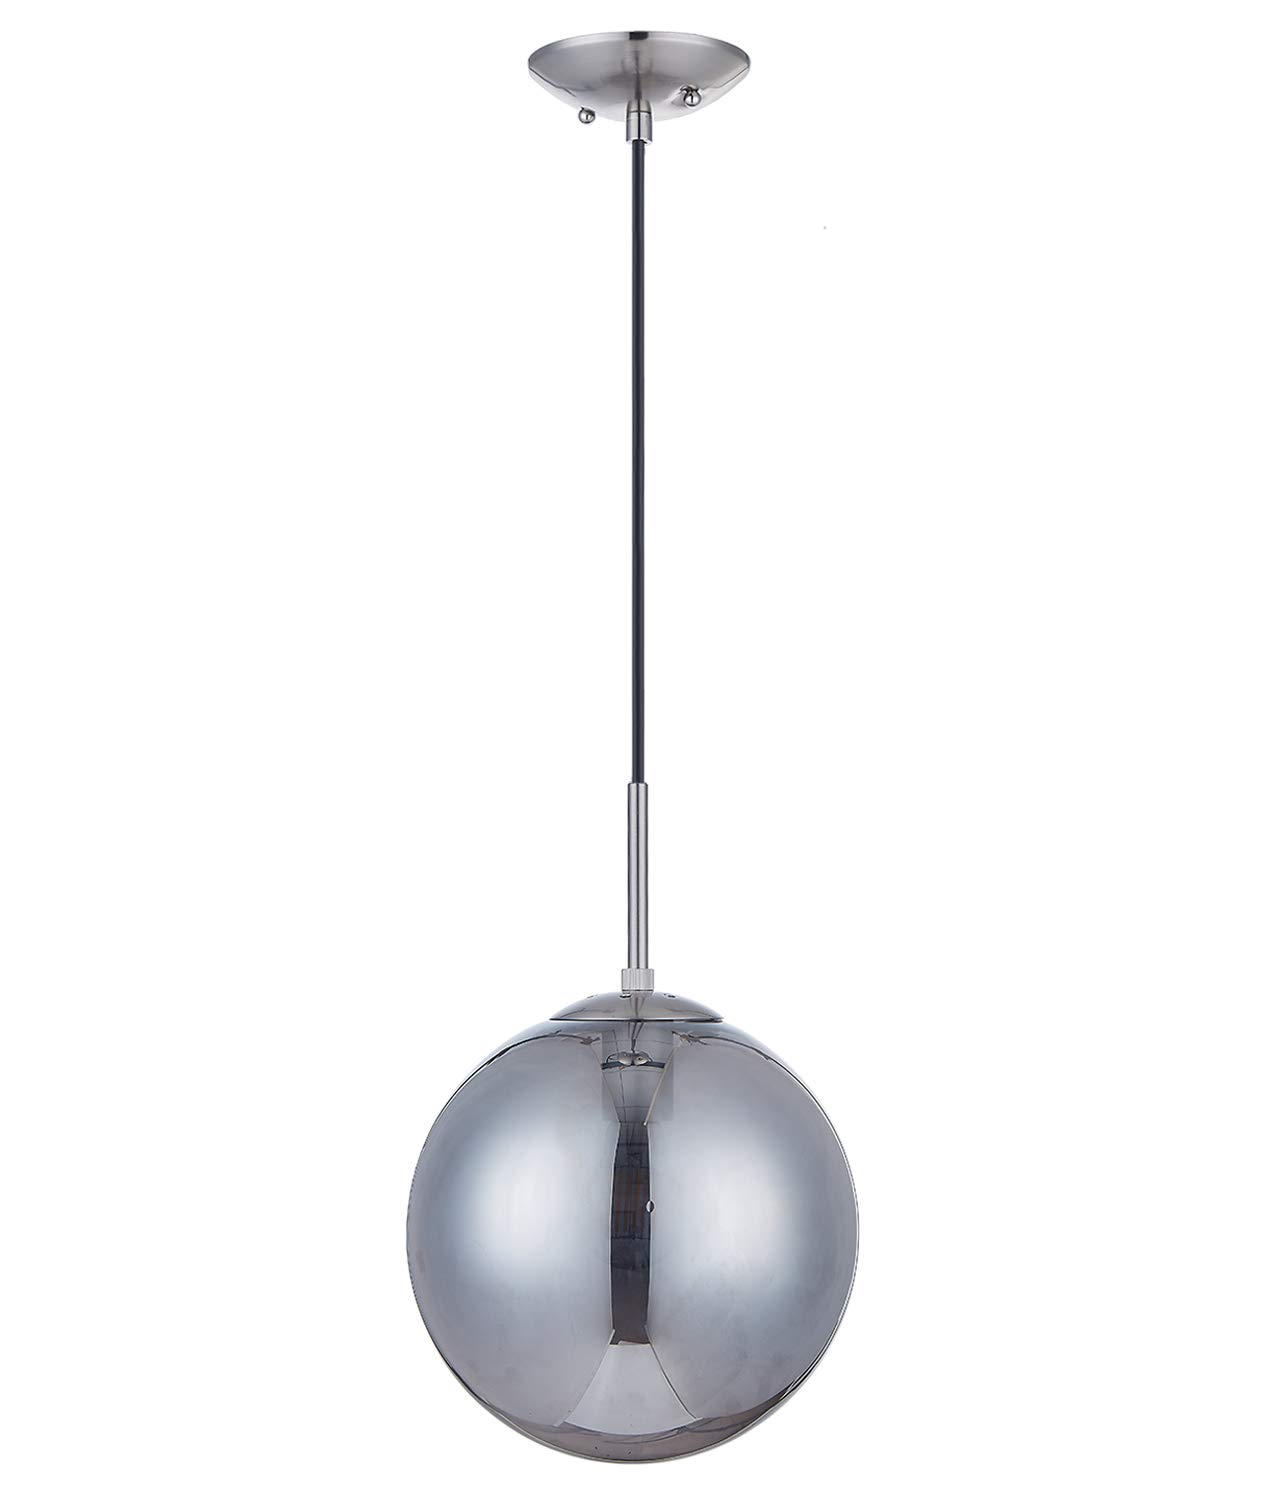 Doraimi 1-Light Modern Simple,Stem Hanging Pendant,Brushed Nickel Finish with Smoky Gray Glass for Bar, Dining Room, Corridor,Living Room. LED Bulb not Include – Dia 8